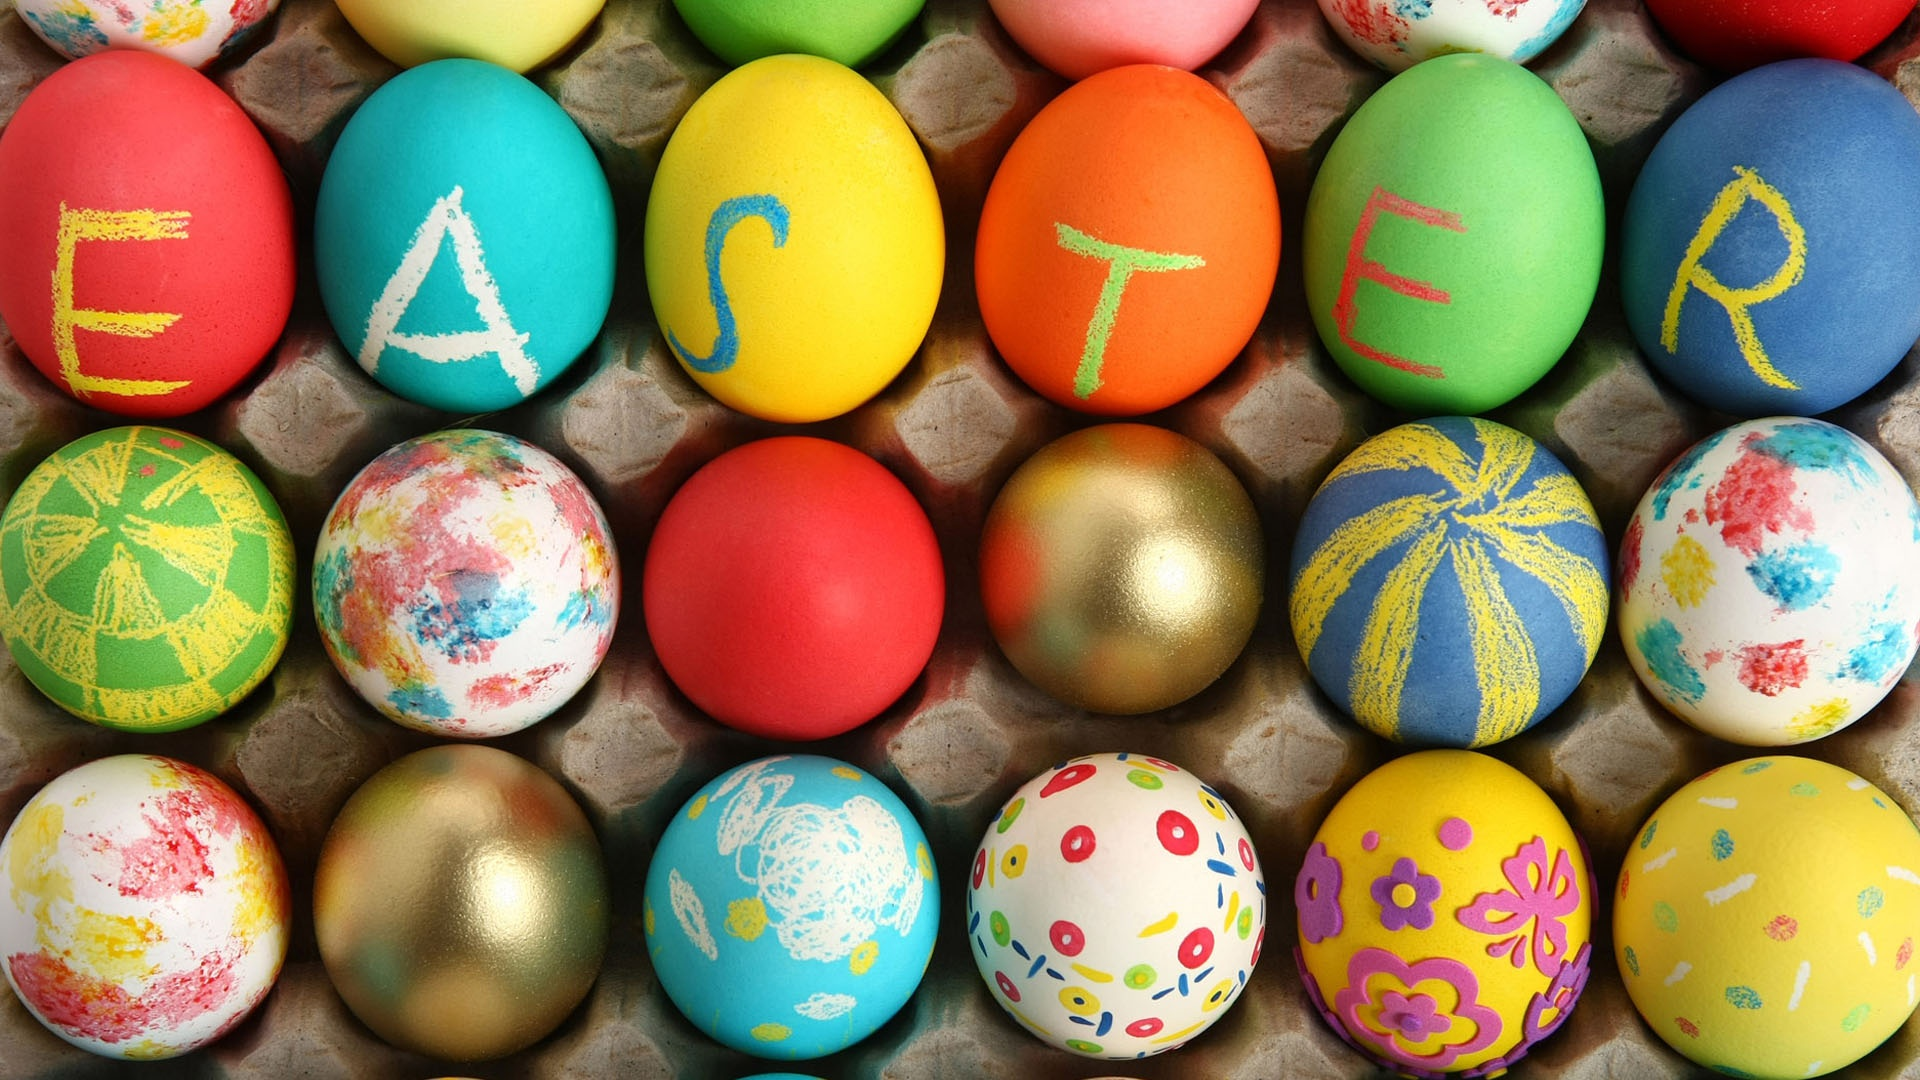 Happy Easter from Arkade Property